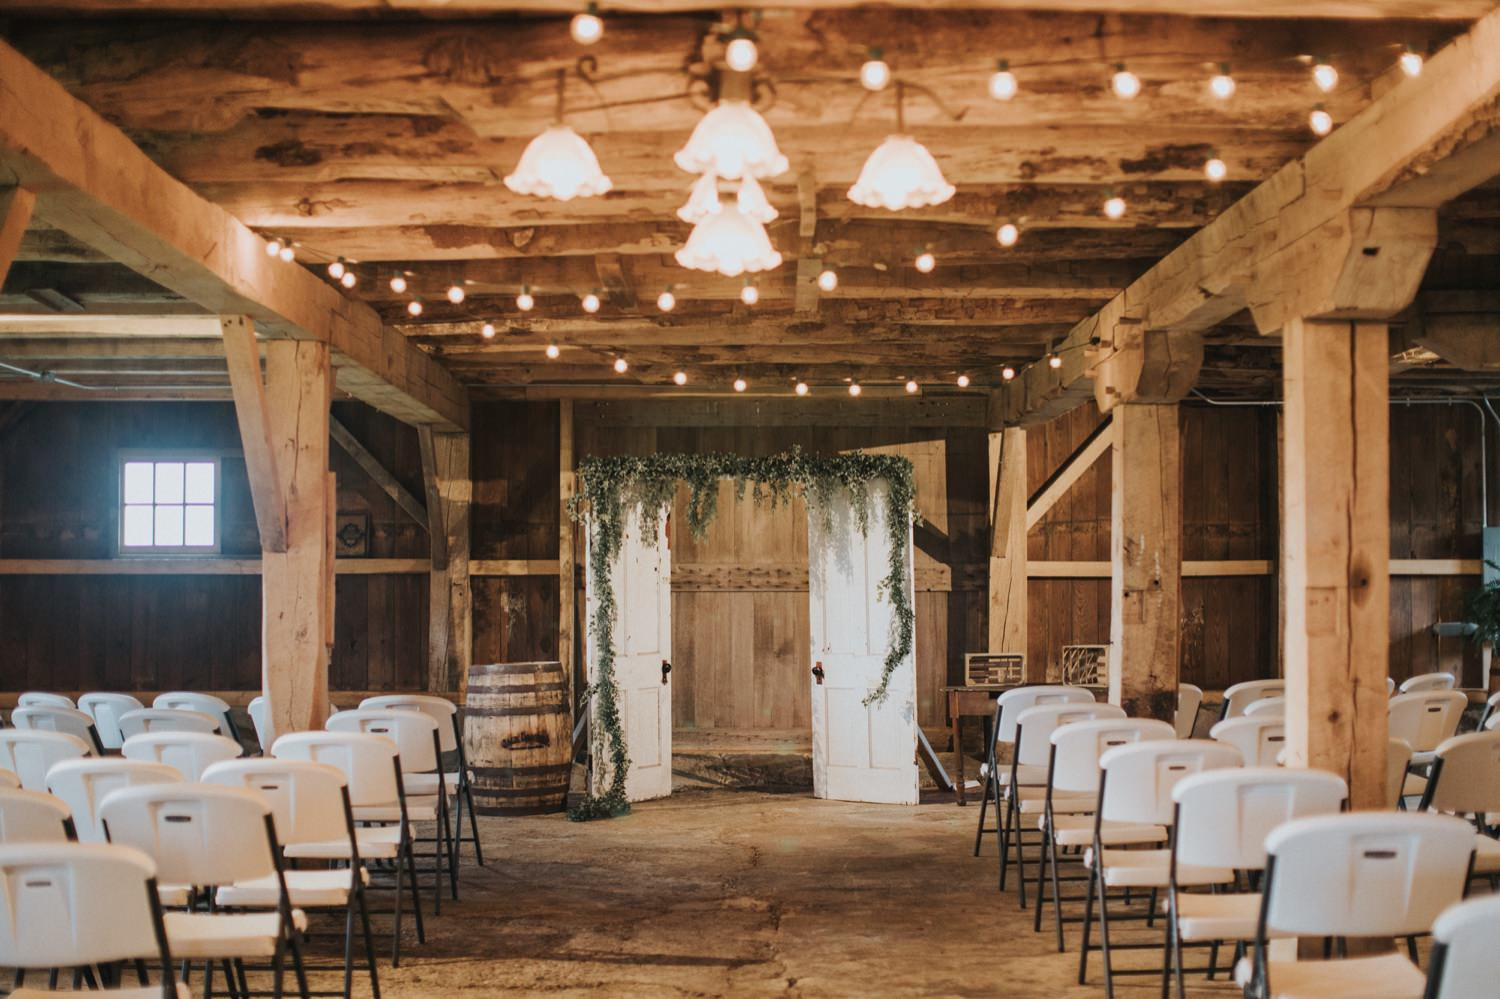 The Shepard Barn in Casstown, The Shepard Barn wedding in Ohio, Ohio wedding photographer, Dayton Ohio wedding photographer, Columbus wedding photographer, LGBTQ Columbus wedding photographer, ohio wedding venues, Indianapolis wedding photographer, Columbus wedding venue, barn wedding, Ohio barn wedding, wedding inspiration, wedding photography, bride & bride, same sex Ohio wedding, first look dad, Mrs and Mrs, LGBT wedding photos, ceremony wedding decoration, ceremony ideas, wedding ceremony